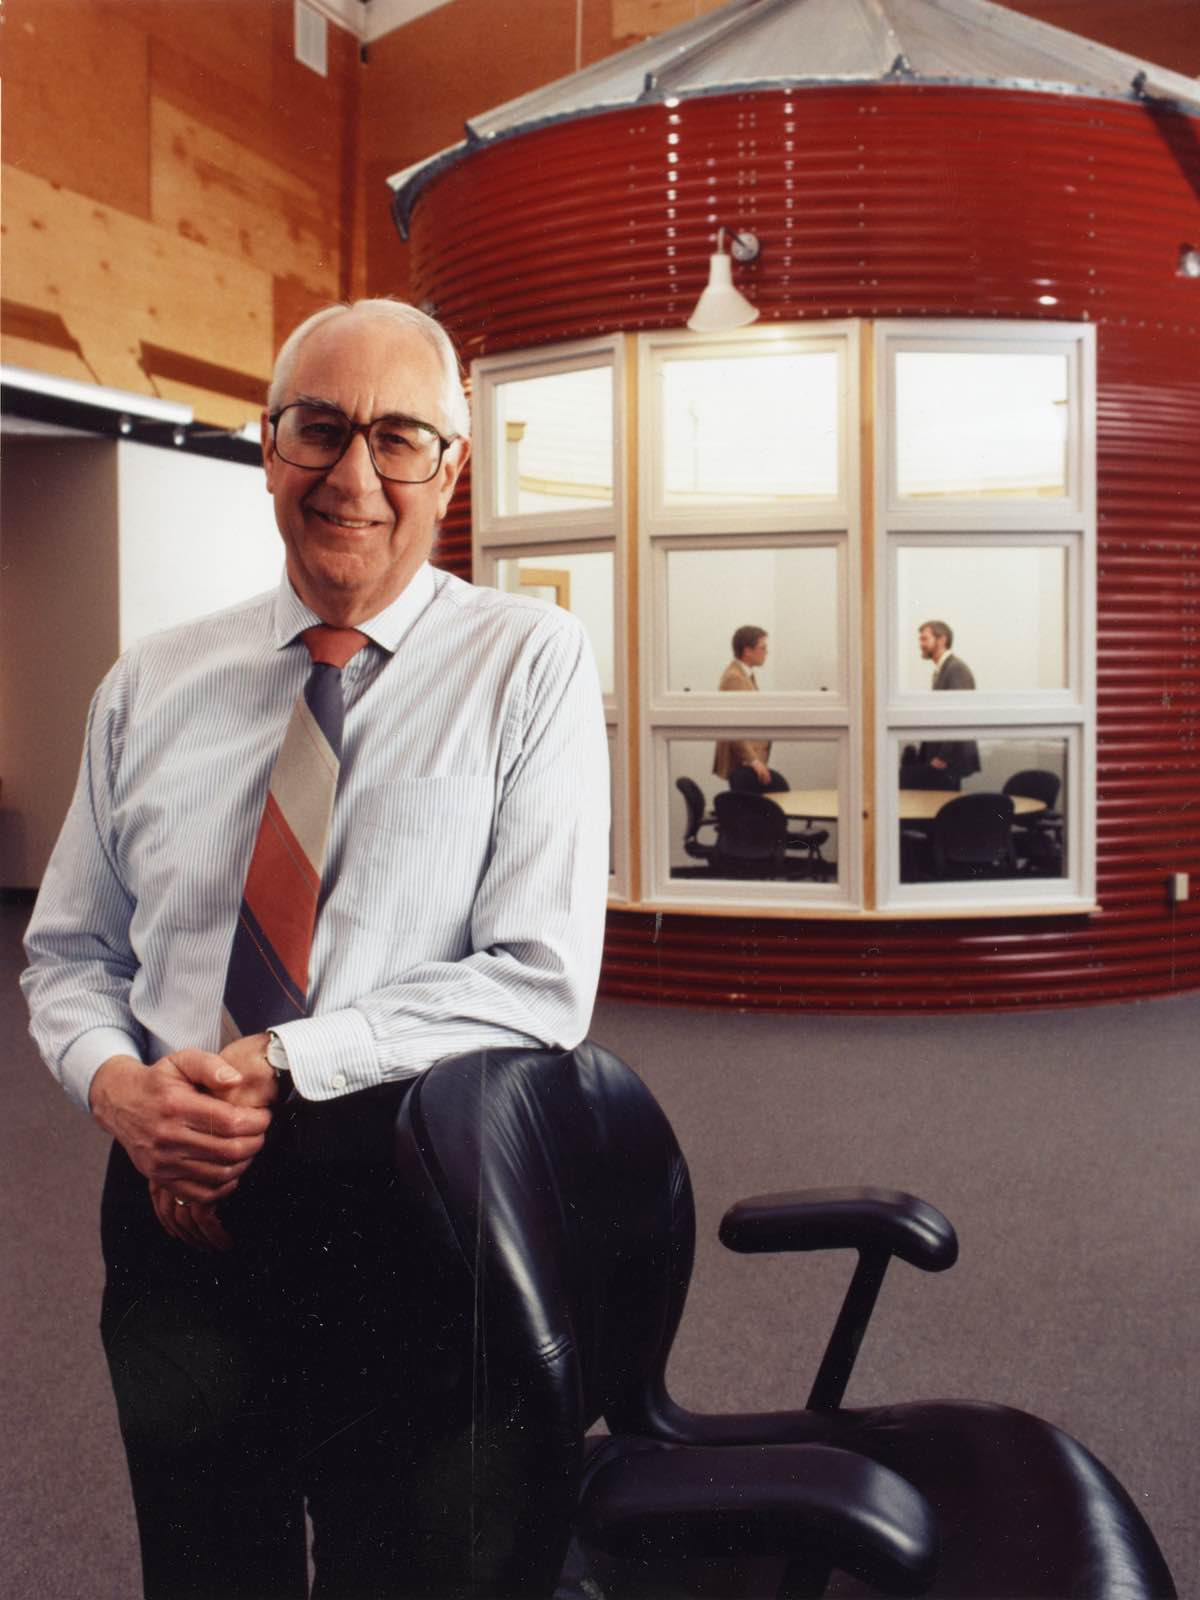 Former Herman Miller CEO Max De Pree leans on a chair in Herman Miller's Design Yard facility in Holland, Michigan.